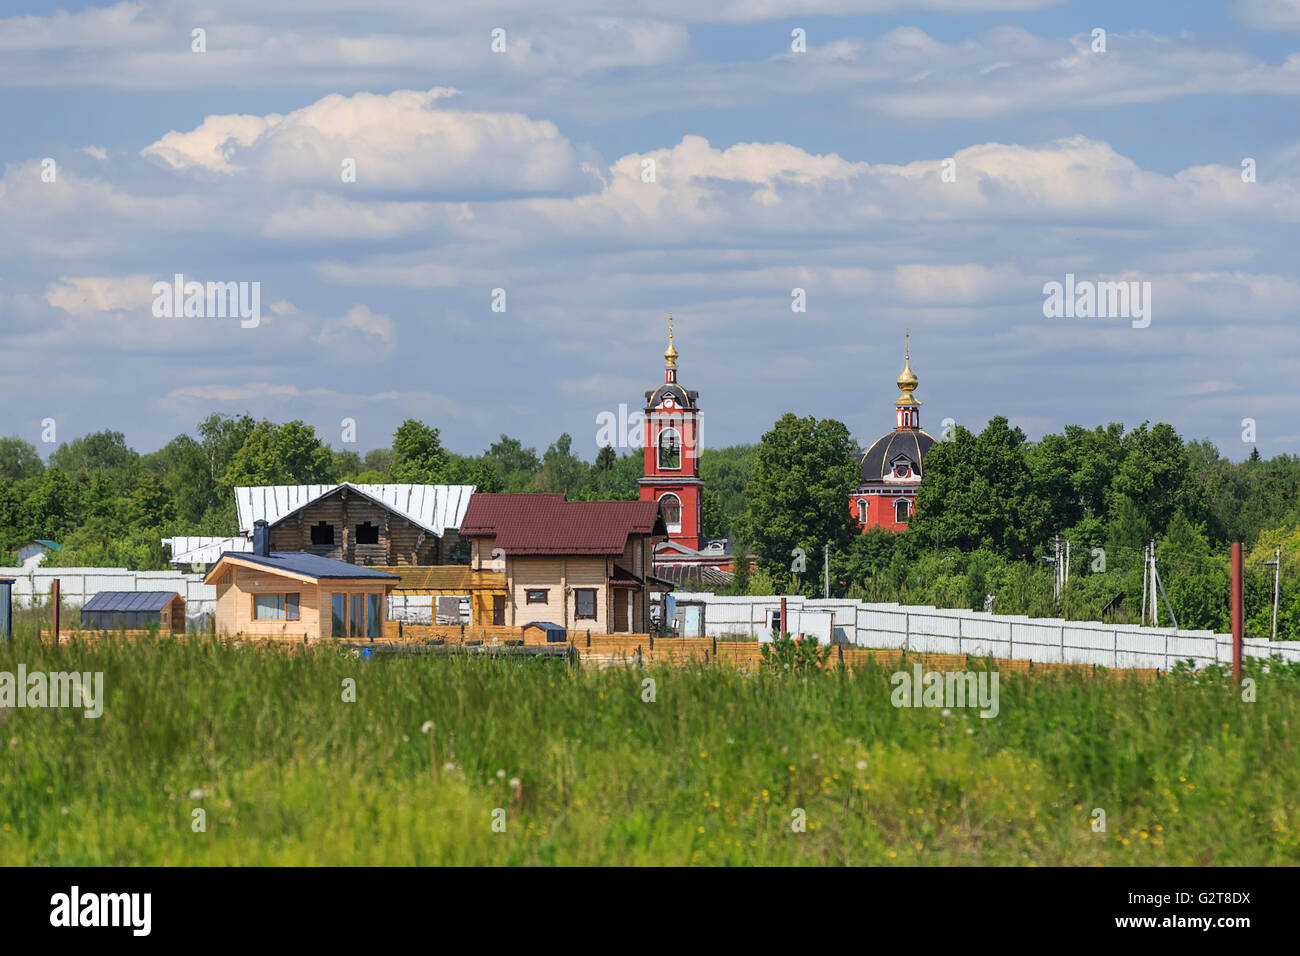 Boris and Gleb temple. Kurtnikovo, Russia - Stock Image